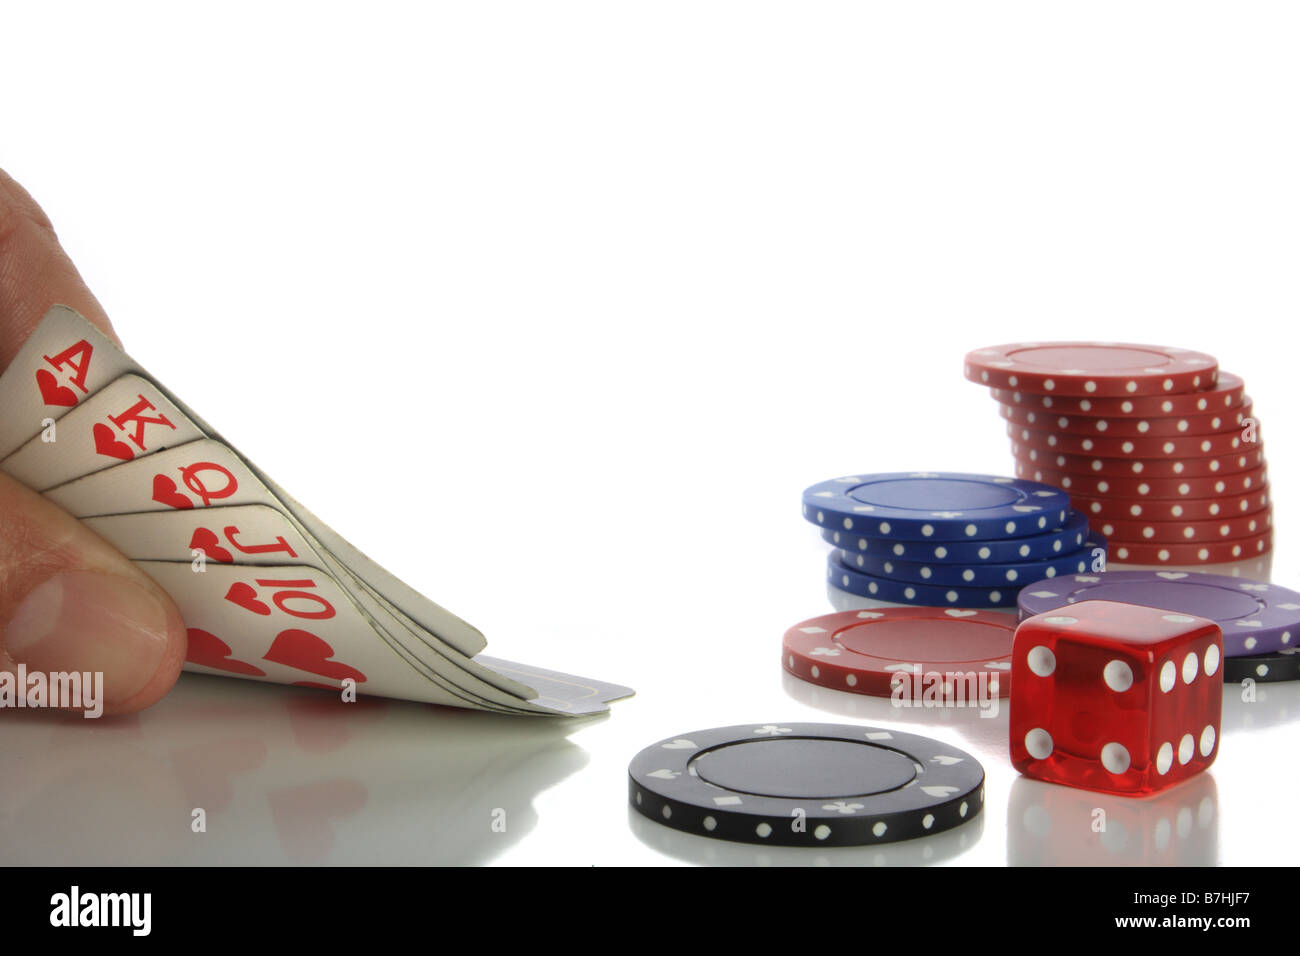 Poker cards and chips reflected on table - Stock Image